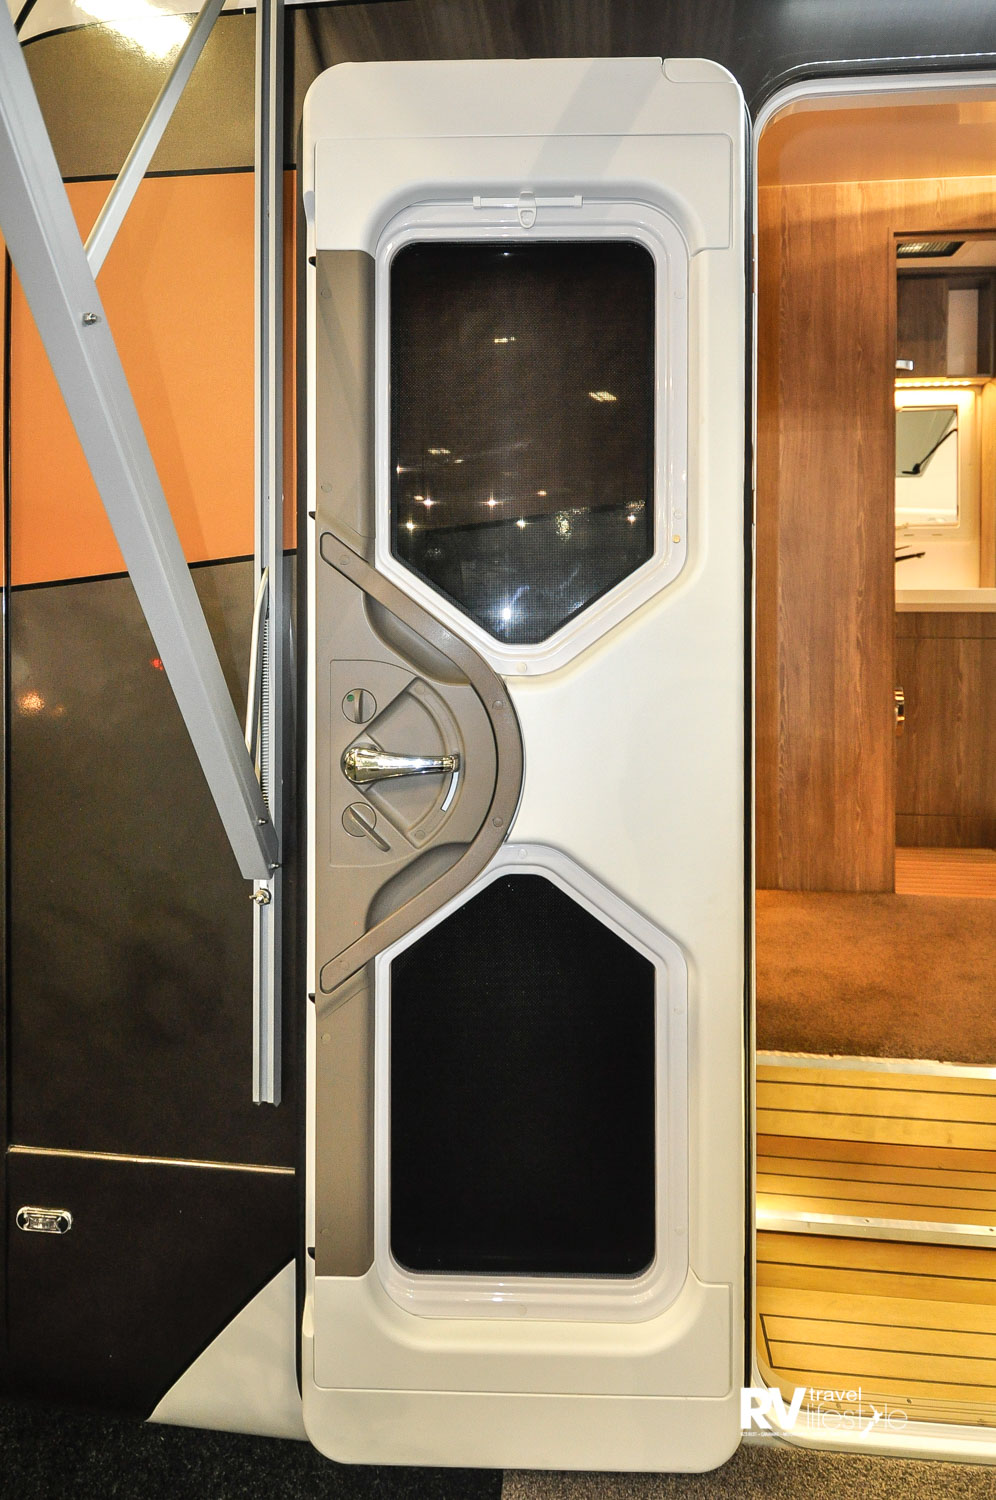 The habitation entry door has viewing ports, but also a privacy blind and built-in fly screen.